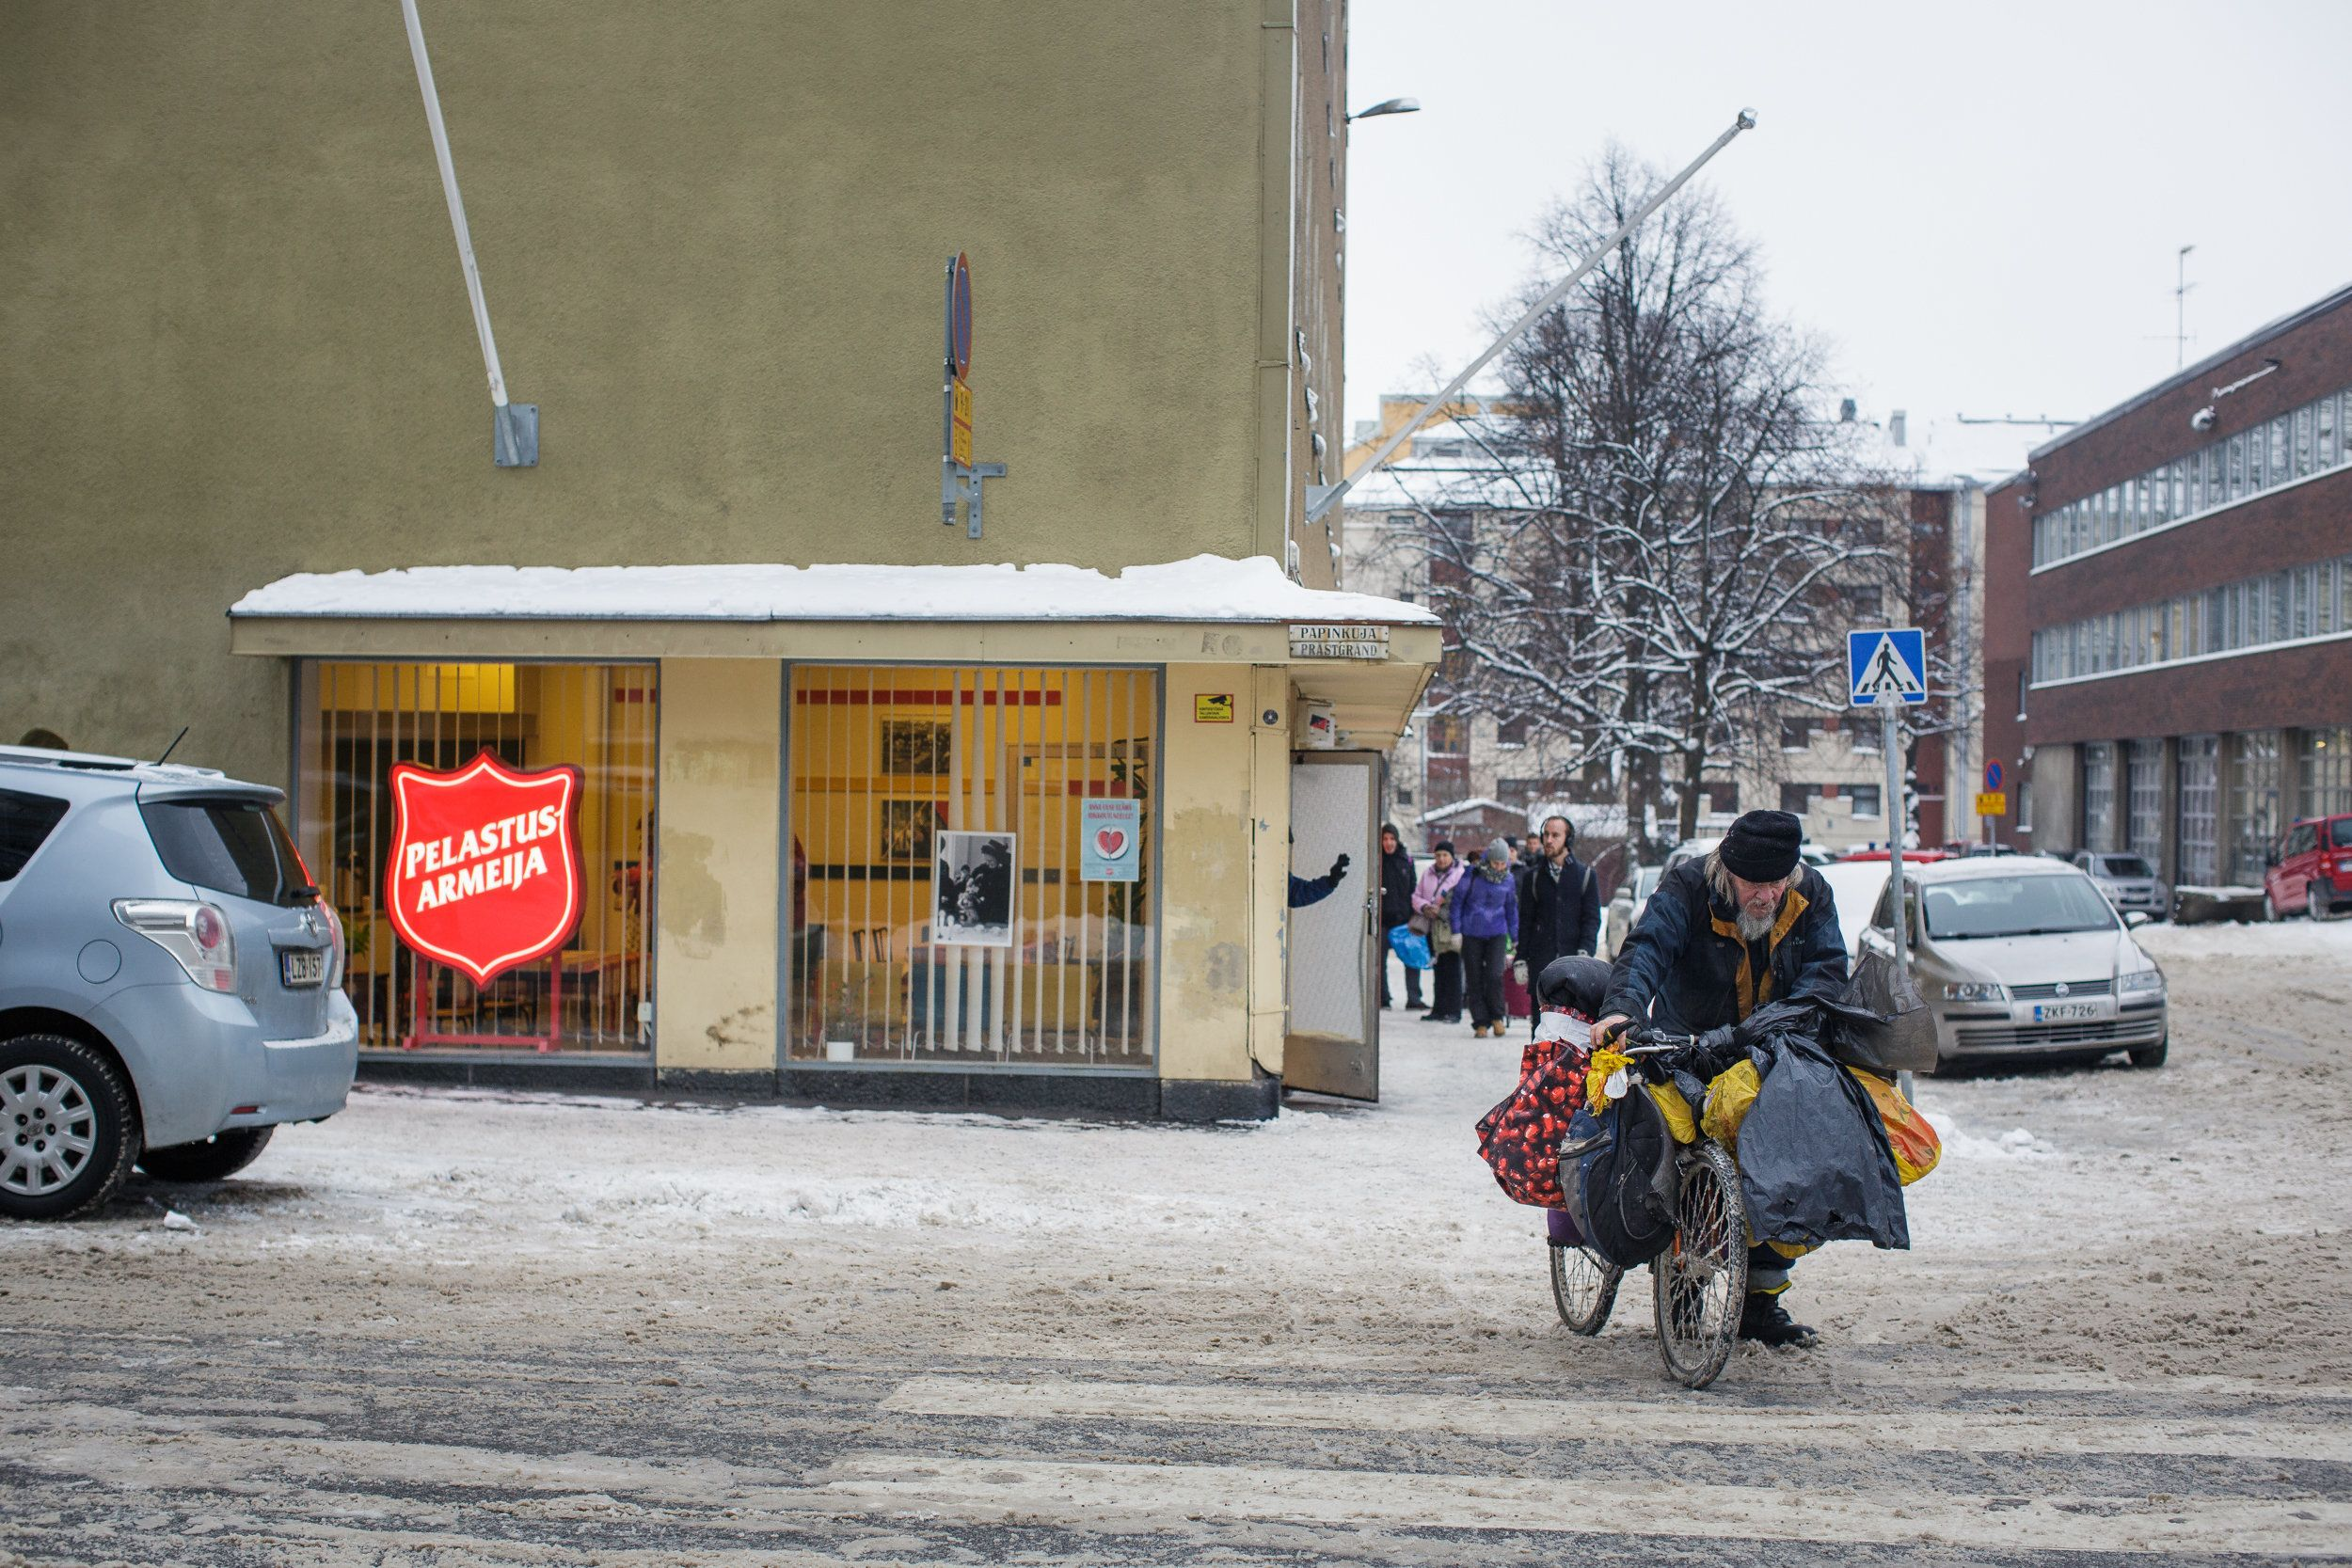 A Salvation Army building in Helsinki was converted from a 250-bed emergency shelter to an 81-apartment supported housin